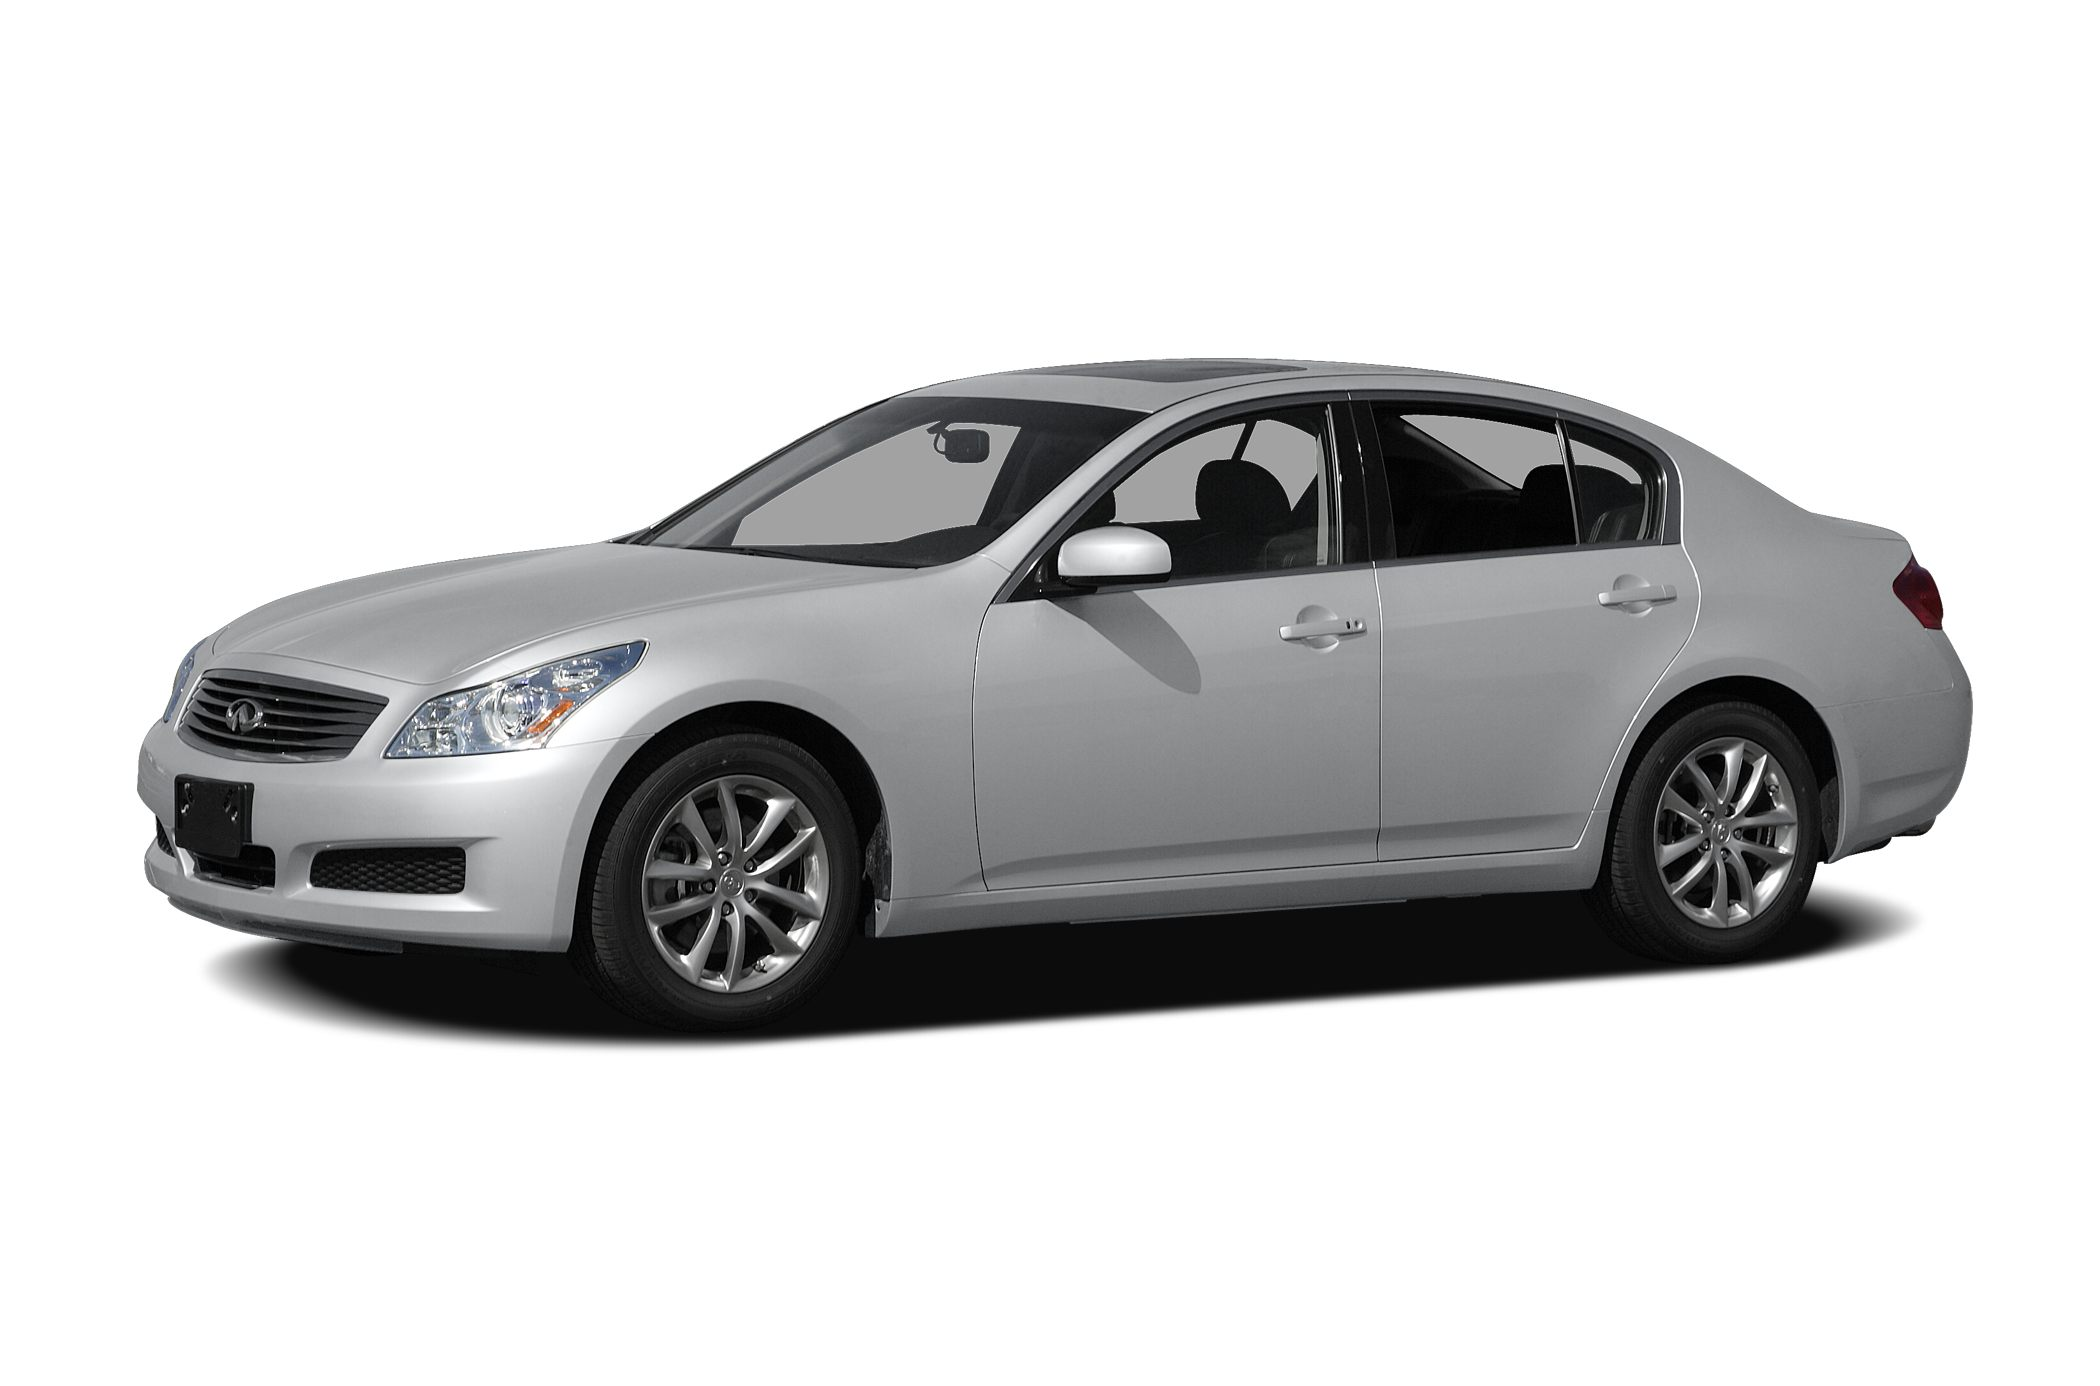 2007 Infiniti G35 Journey Sedan for sale in Alexandria for $15,000 with 63,010 miles